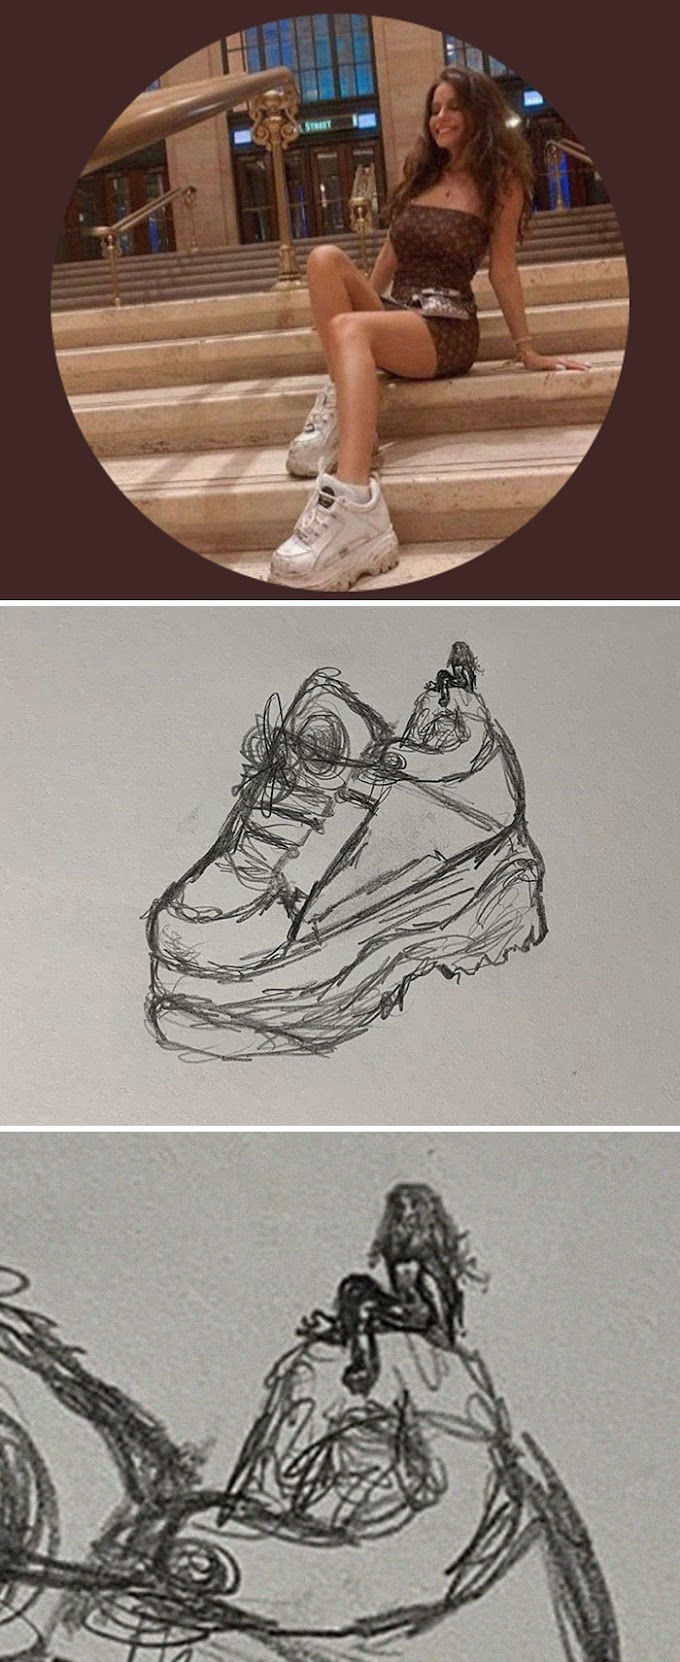 This Guy Is Drawing People's Twitter Profile Pics, And They're Weirdly humorous (101 Pics)